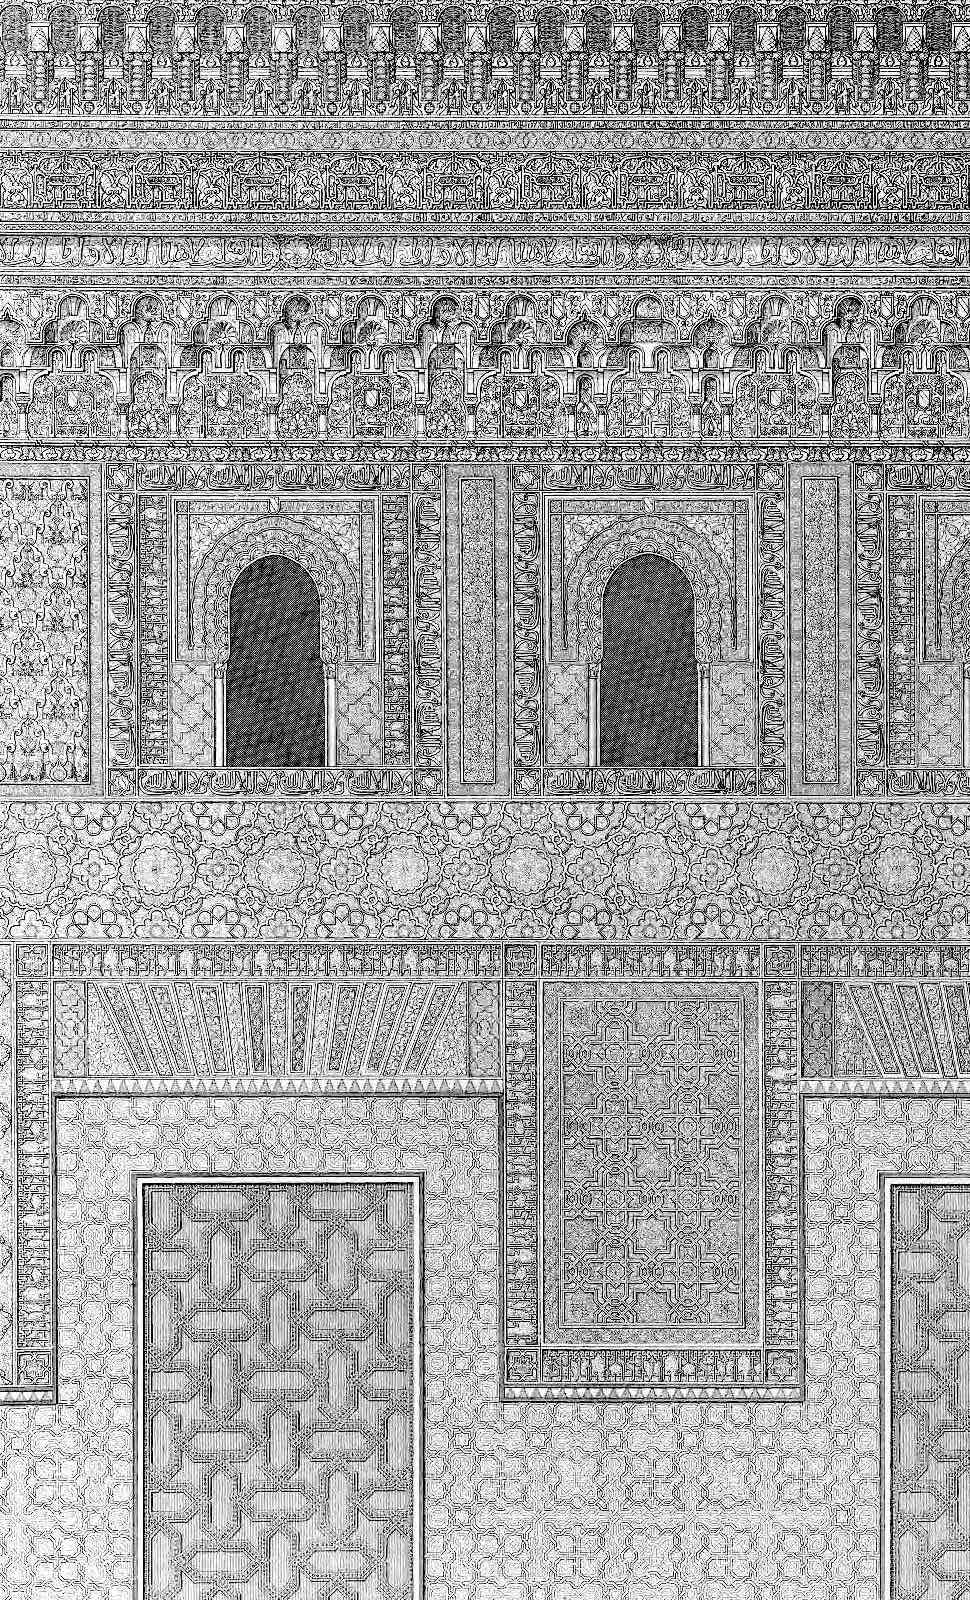 old ornamented walls from the Alhambra palace in Spain illustrated